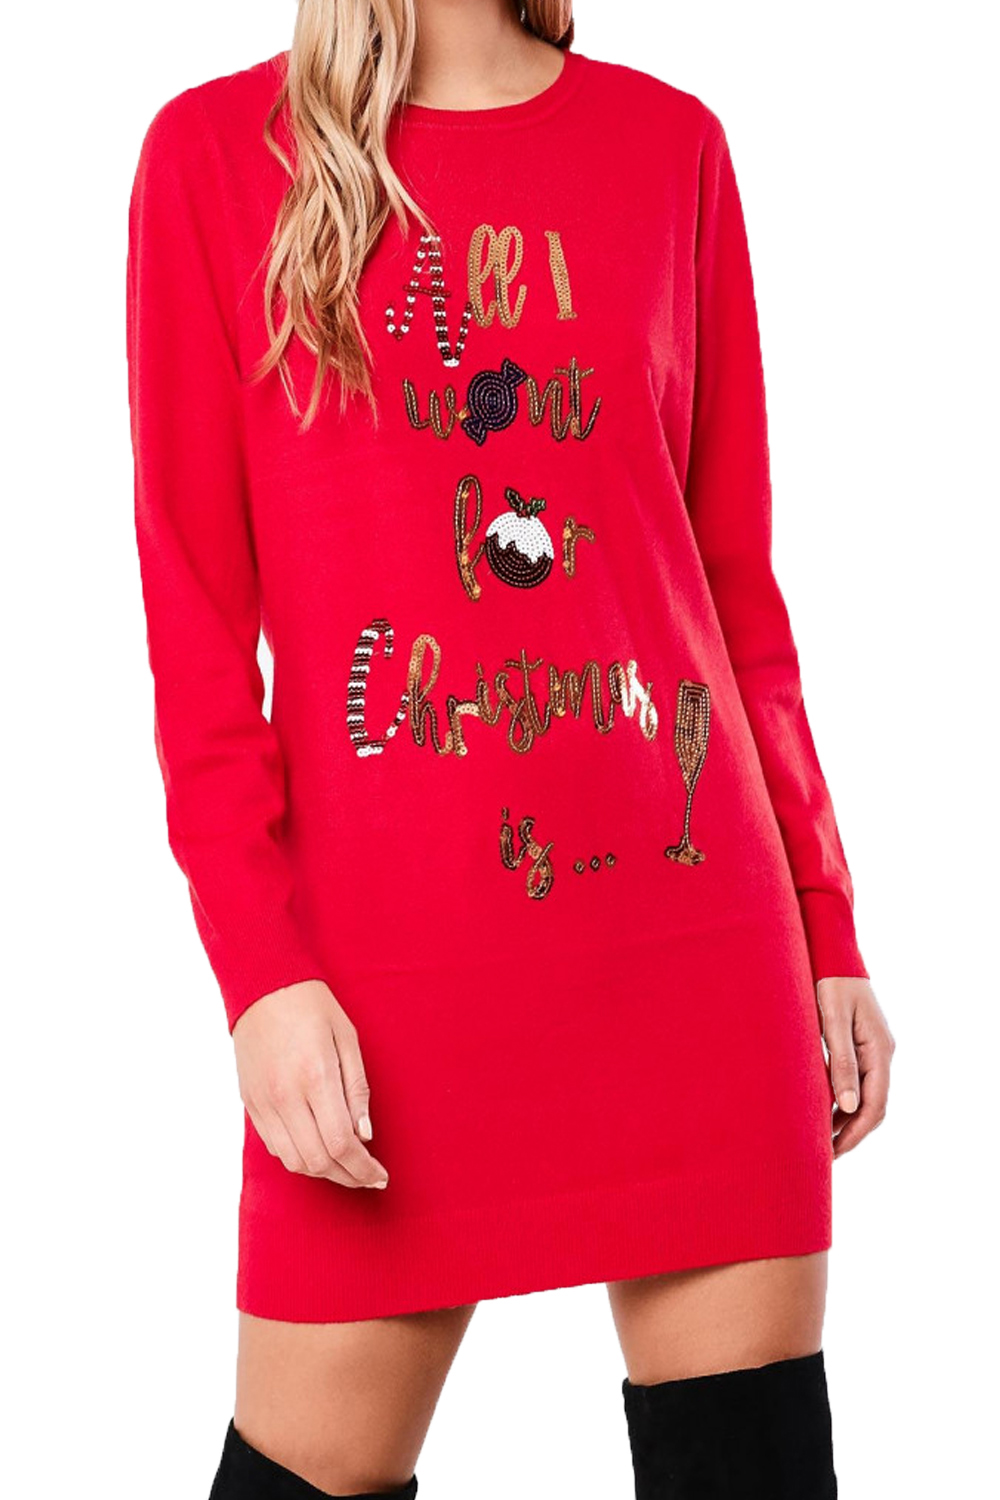 Heart-And-Soul-Womens-Sequin-Christmas-Tunic-Jumpers-Ladies-Novelty-Knitted-Tops thumbnail 8